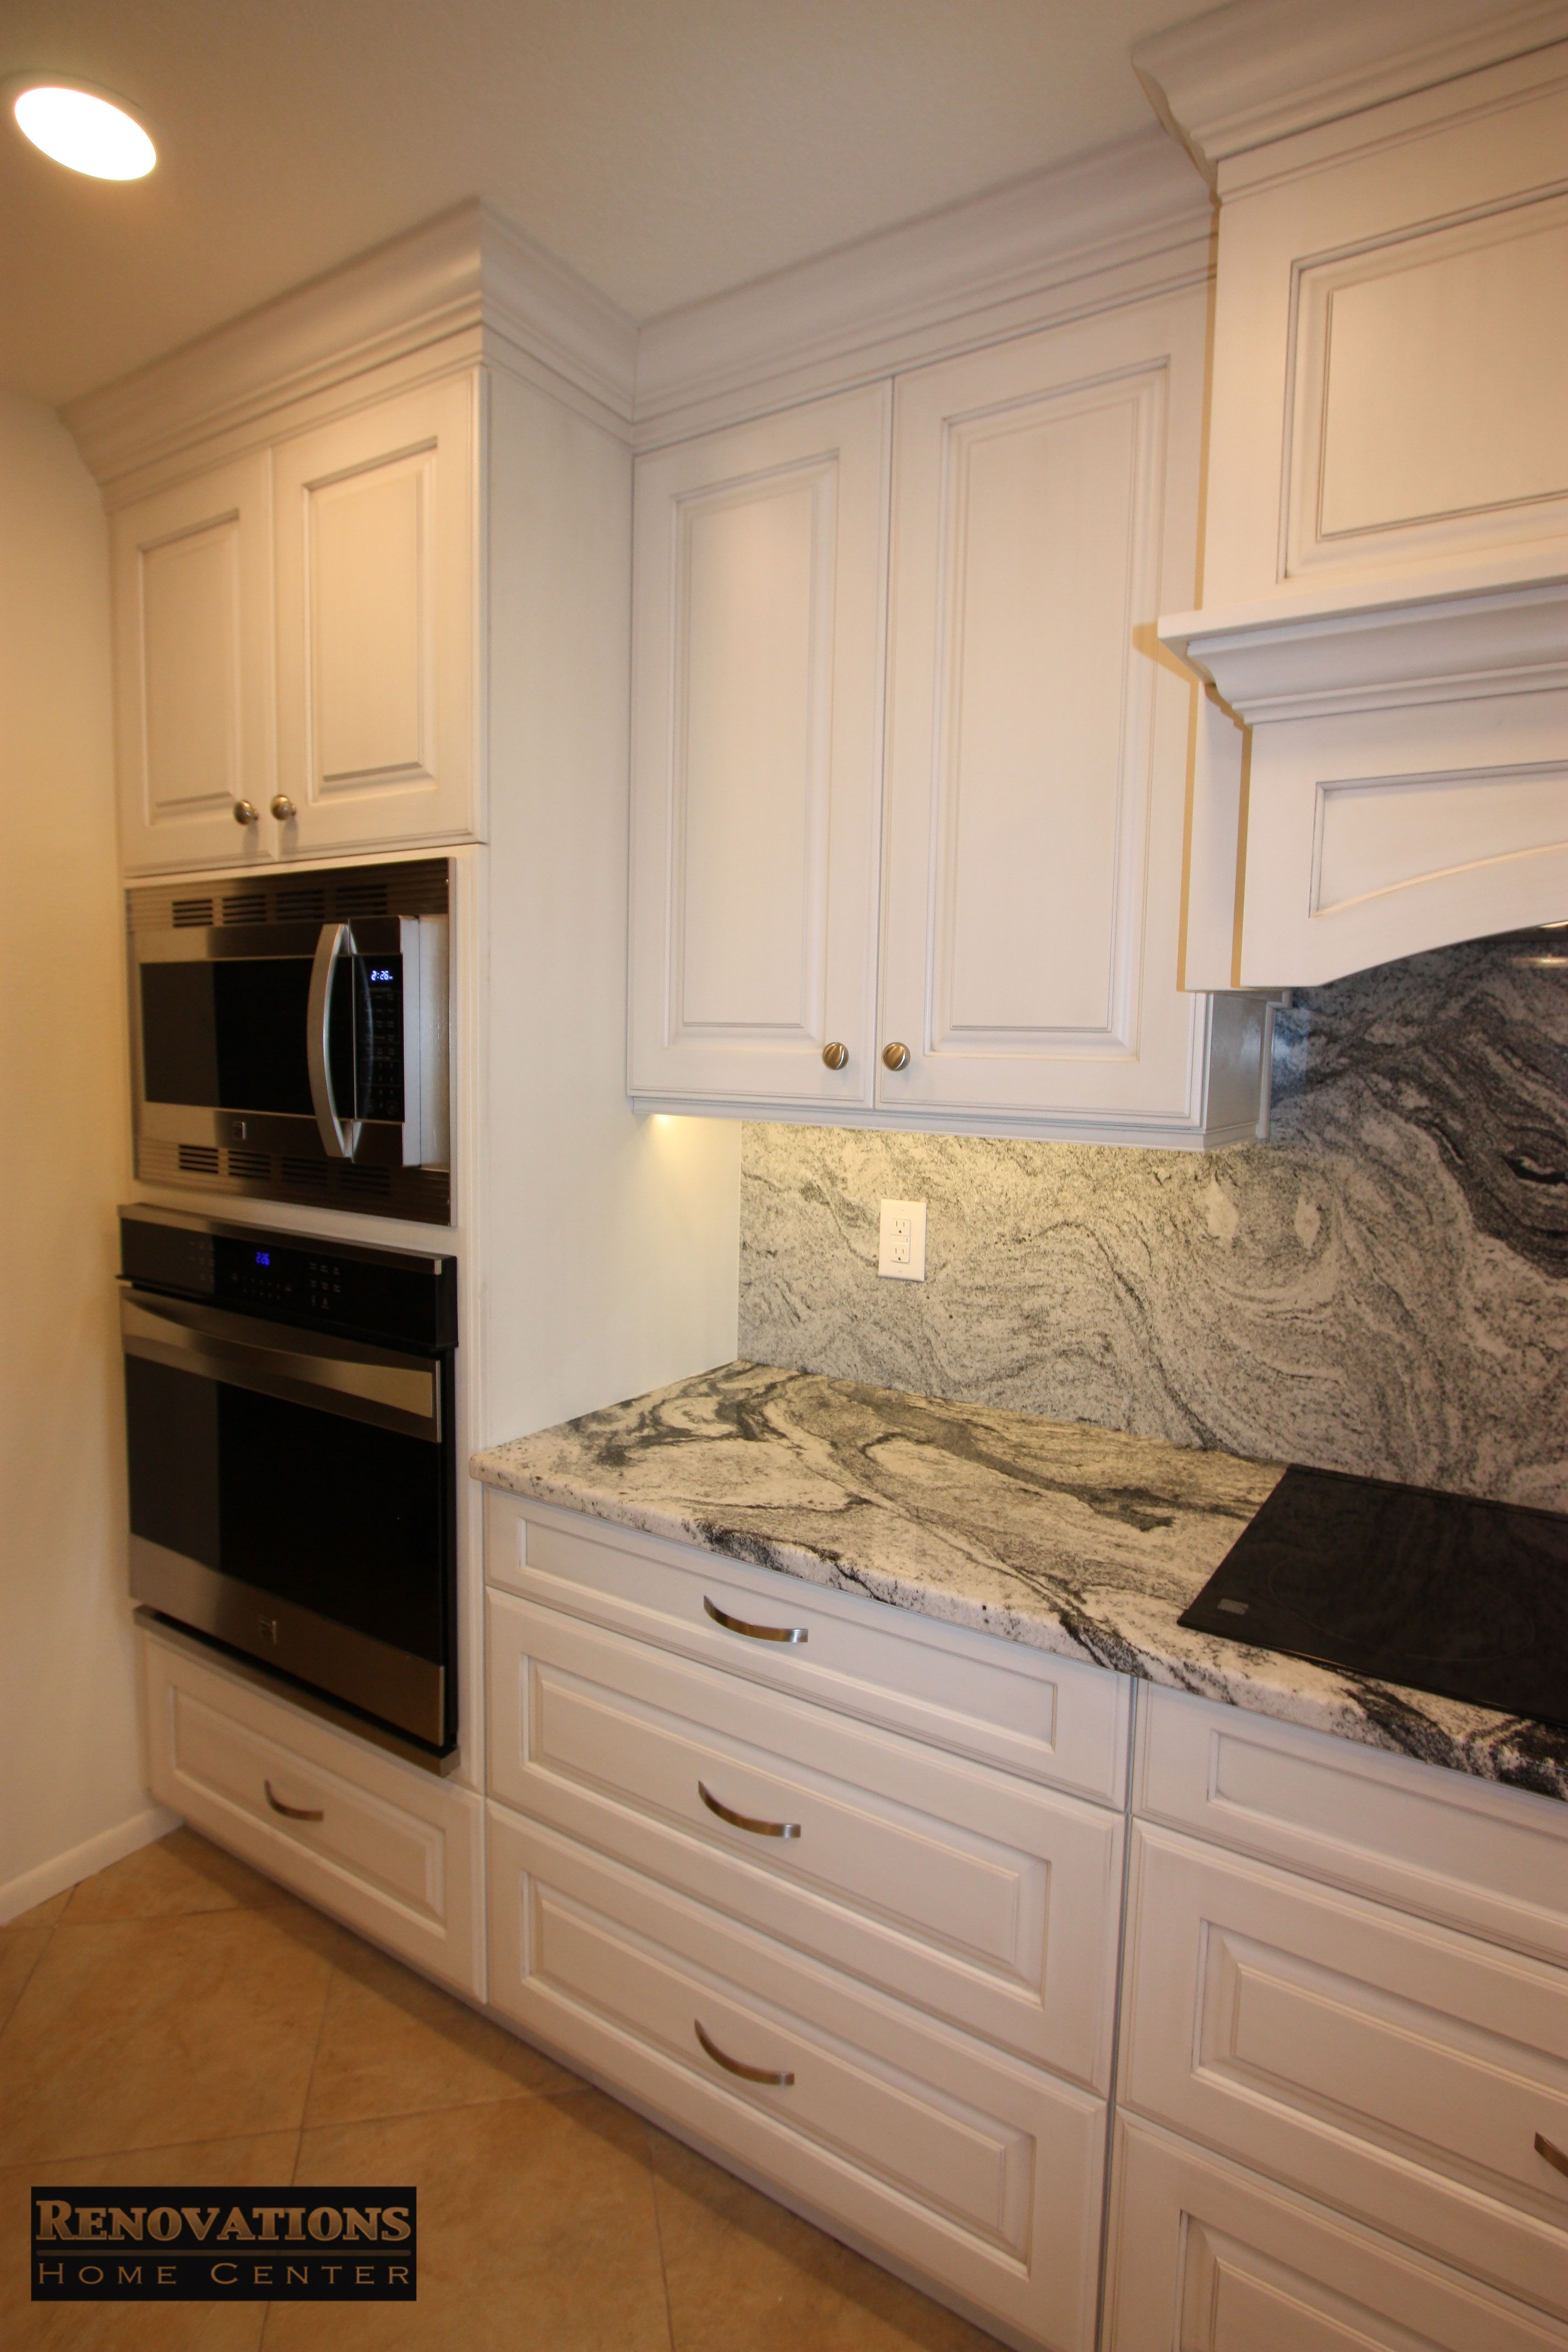 We Recently Completed A Full Kitchen Remodeling Project For Our - Atlas bathroom remodel